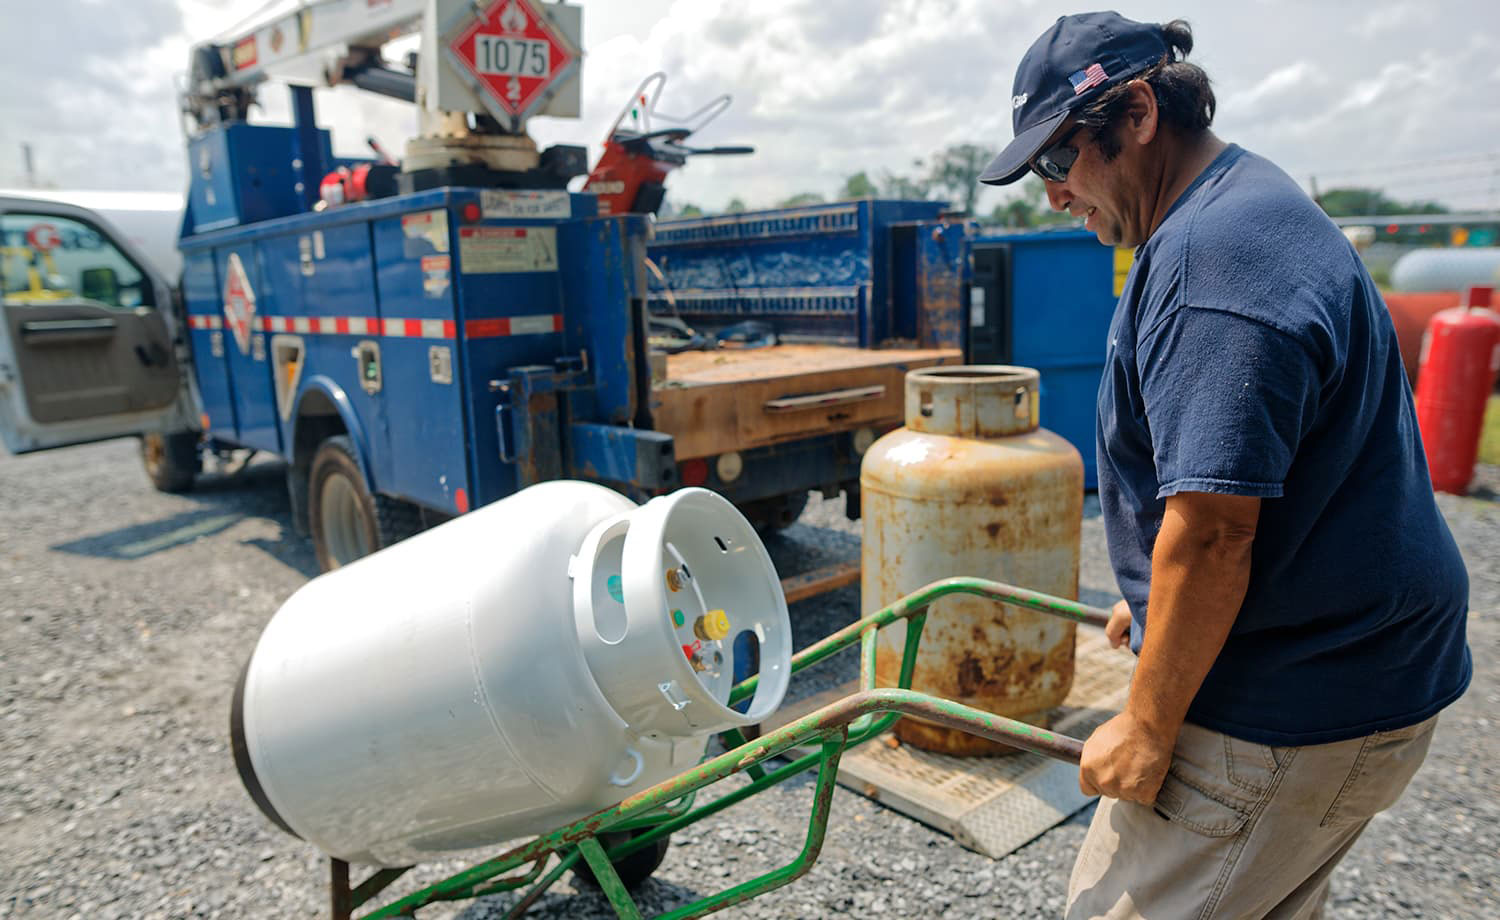 Man moving propane tank with a hand truck.